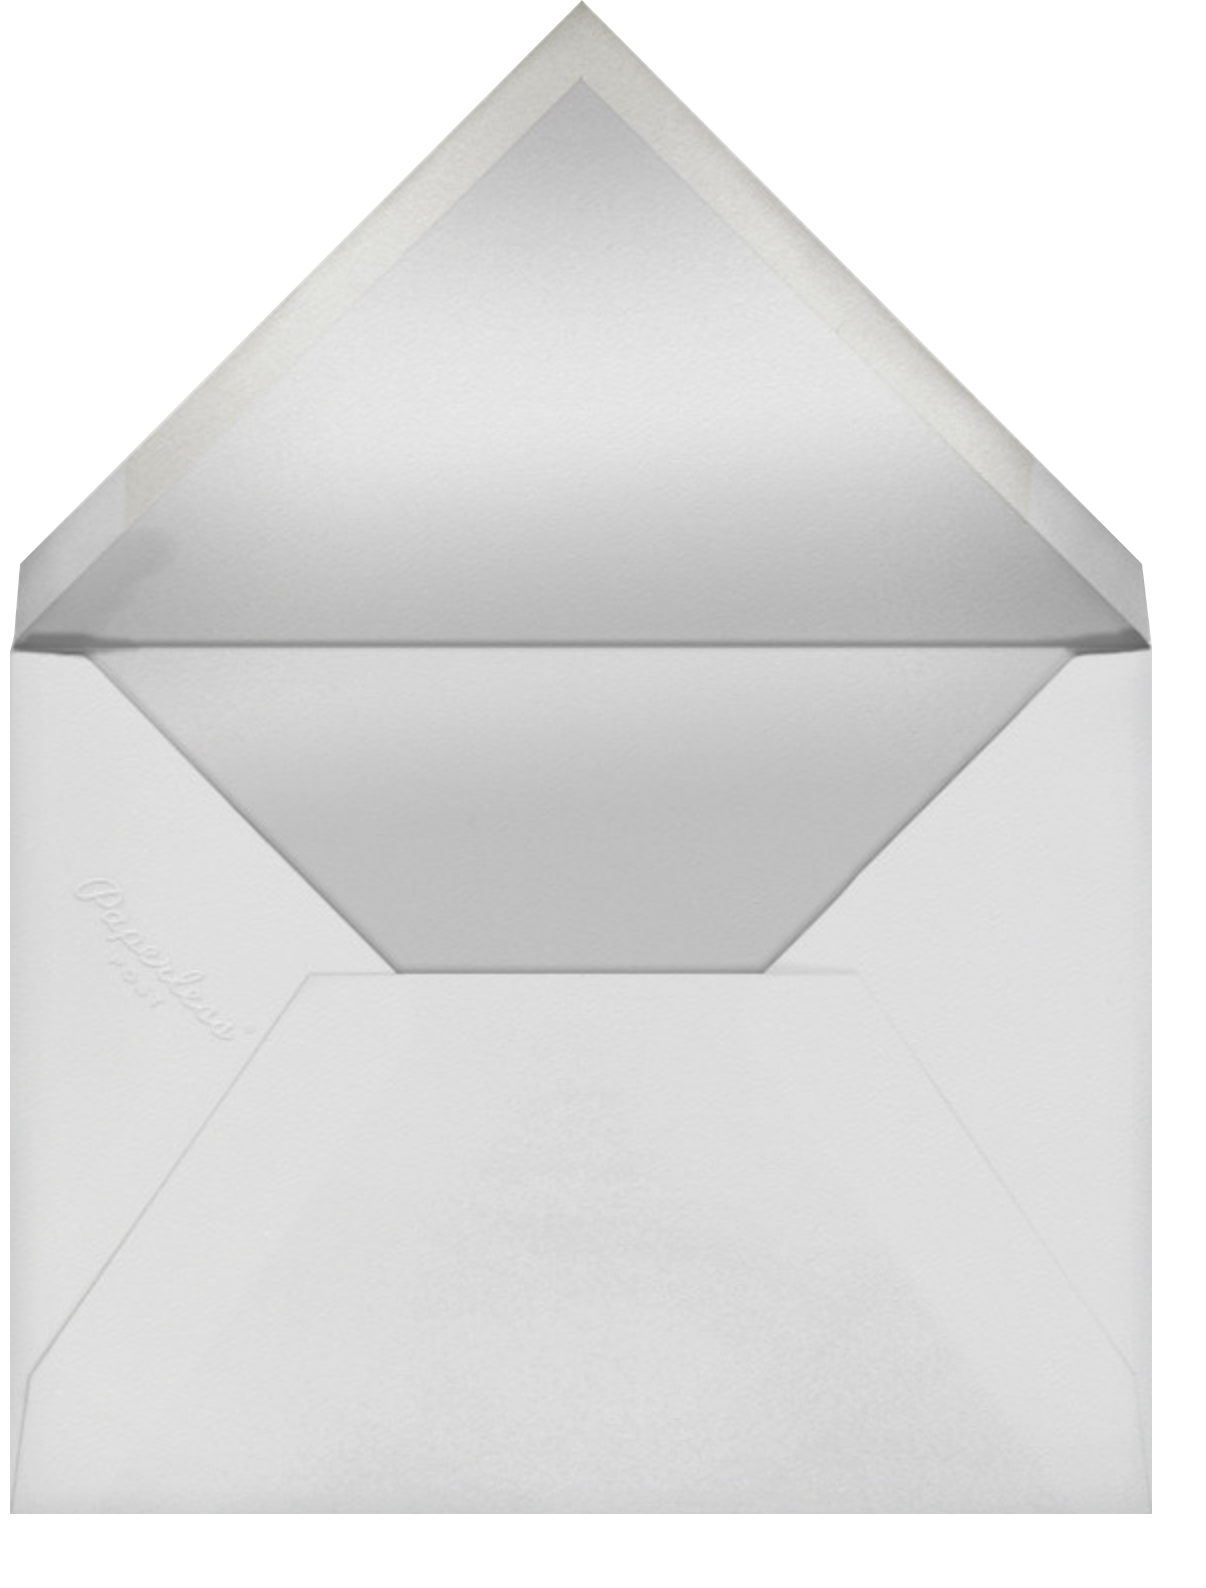 Boating - Paperless Post - Father's Day - envelope back